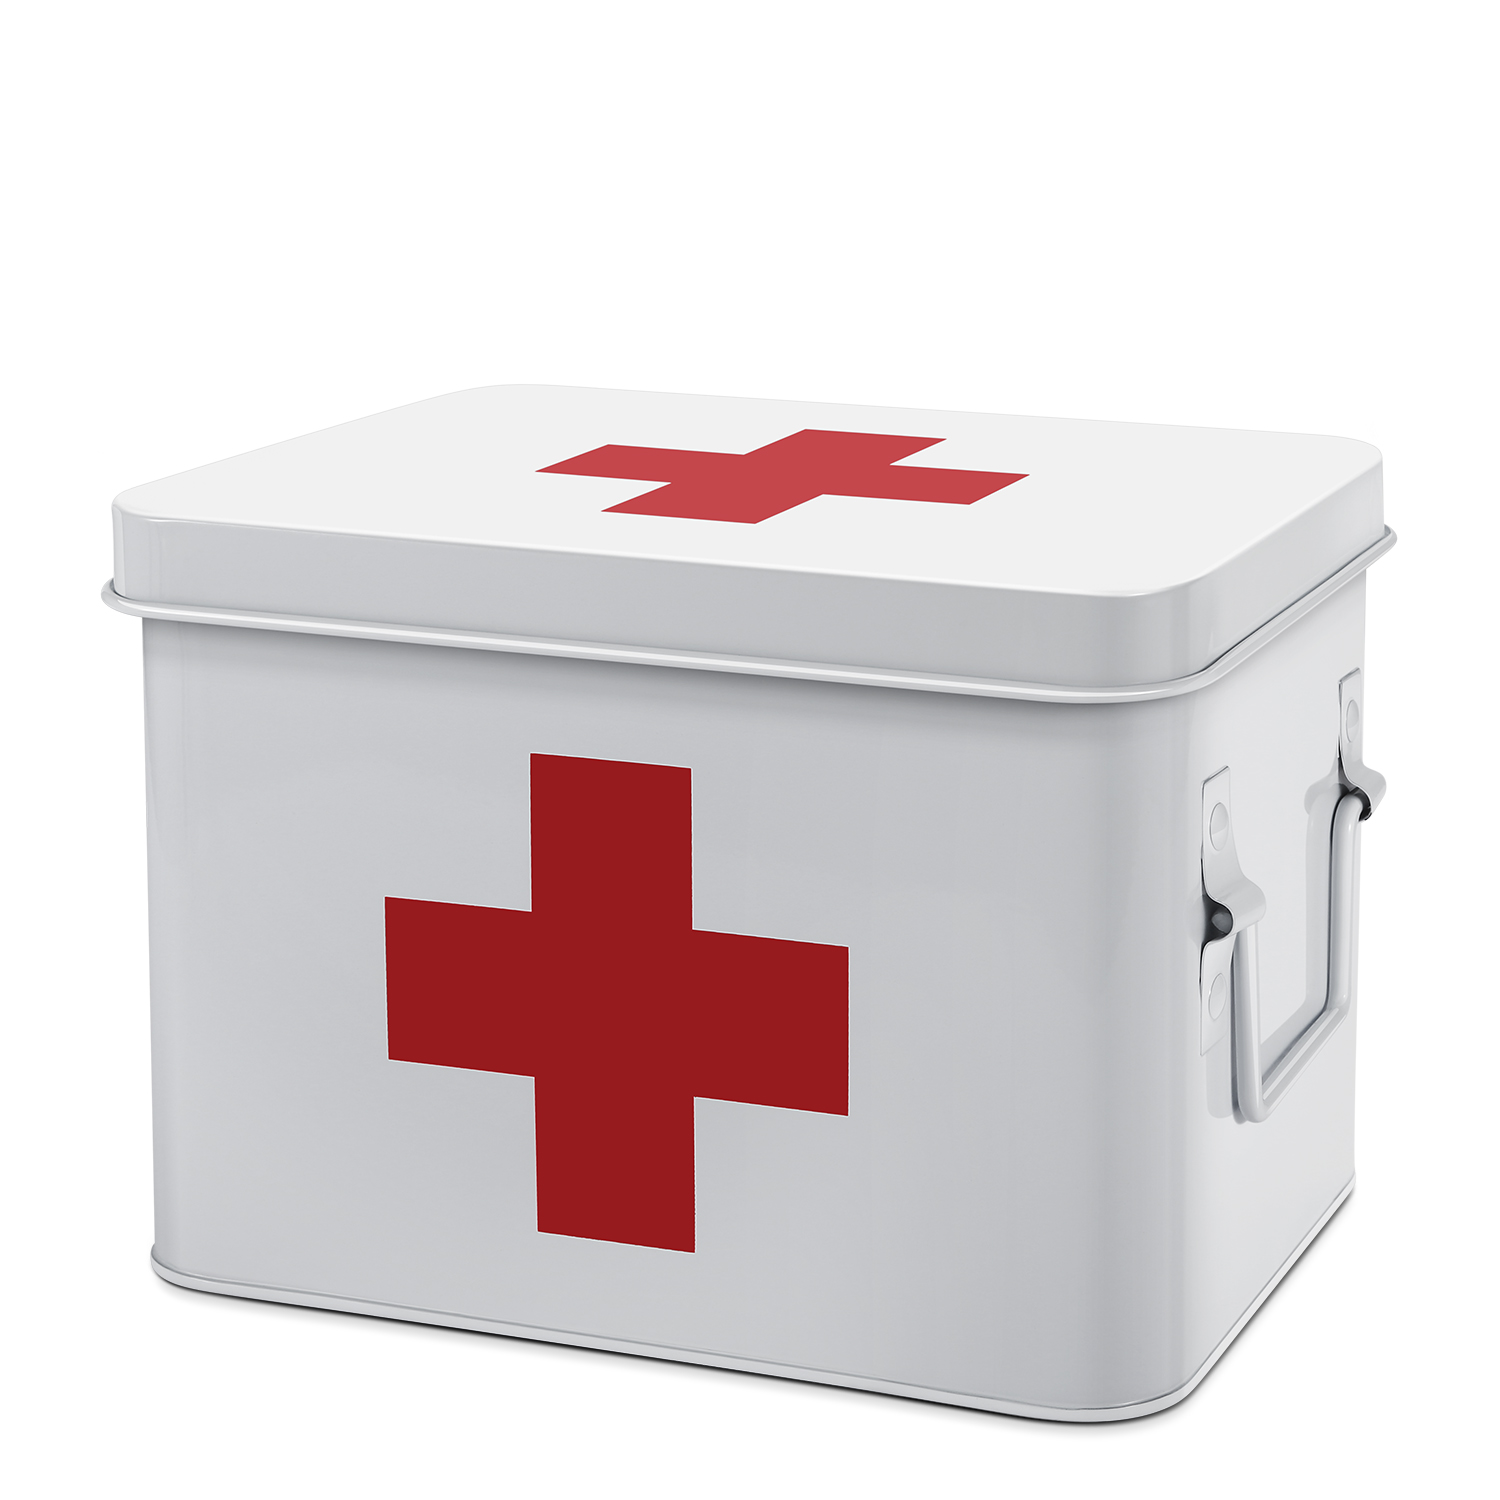 First Aid Medicine Box Supplies Kit Organizer With Removable Tray Decor White Ebay